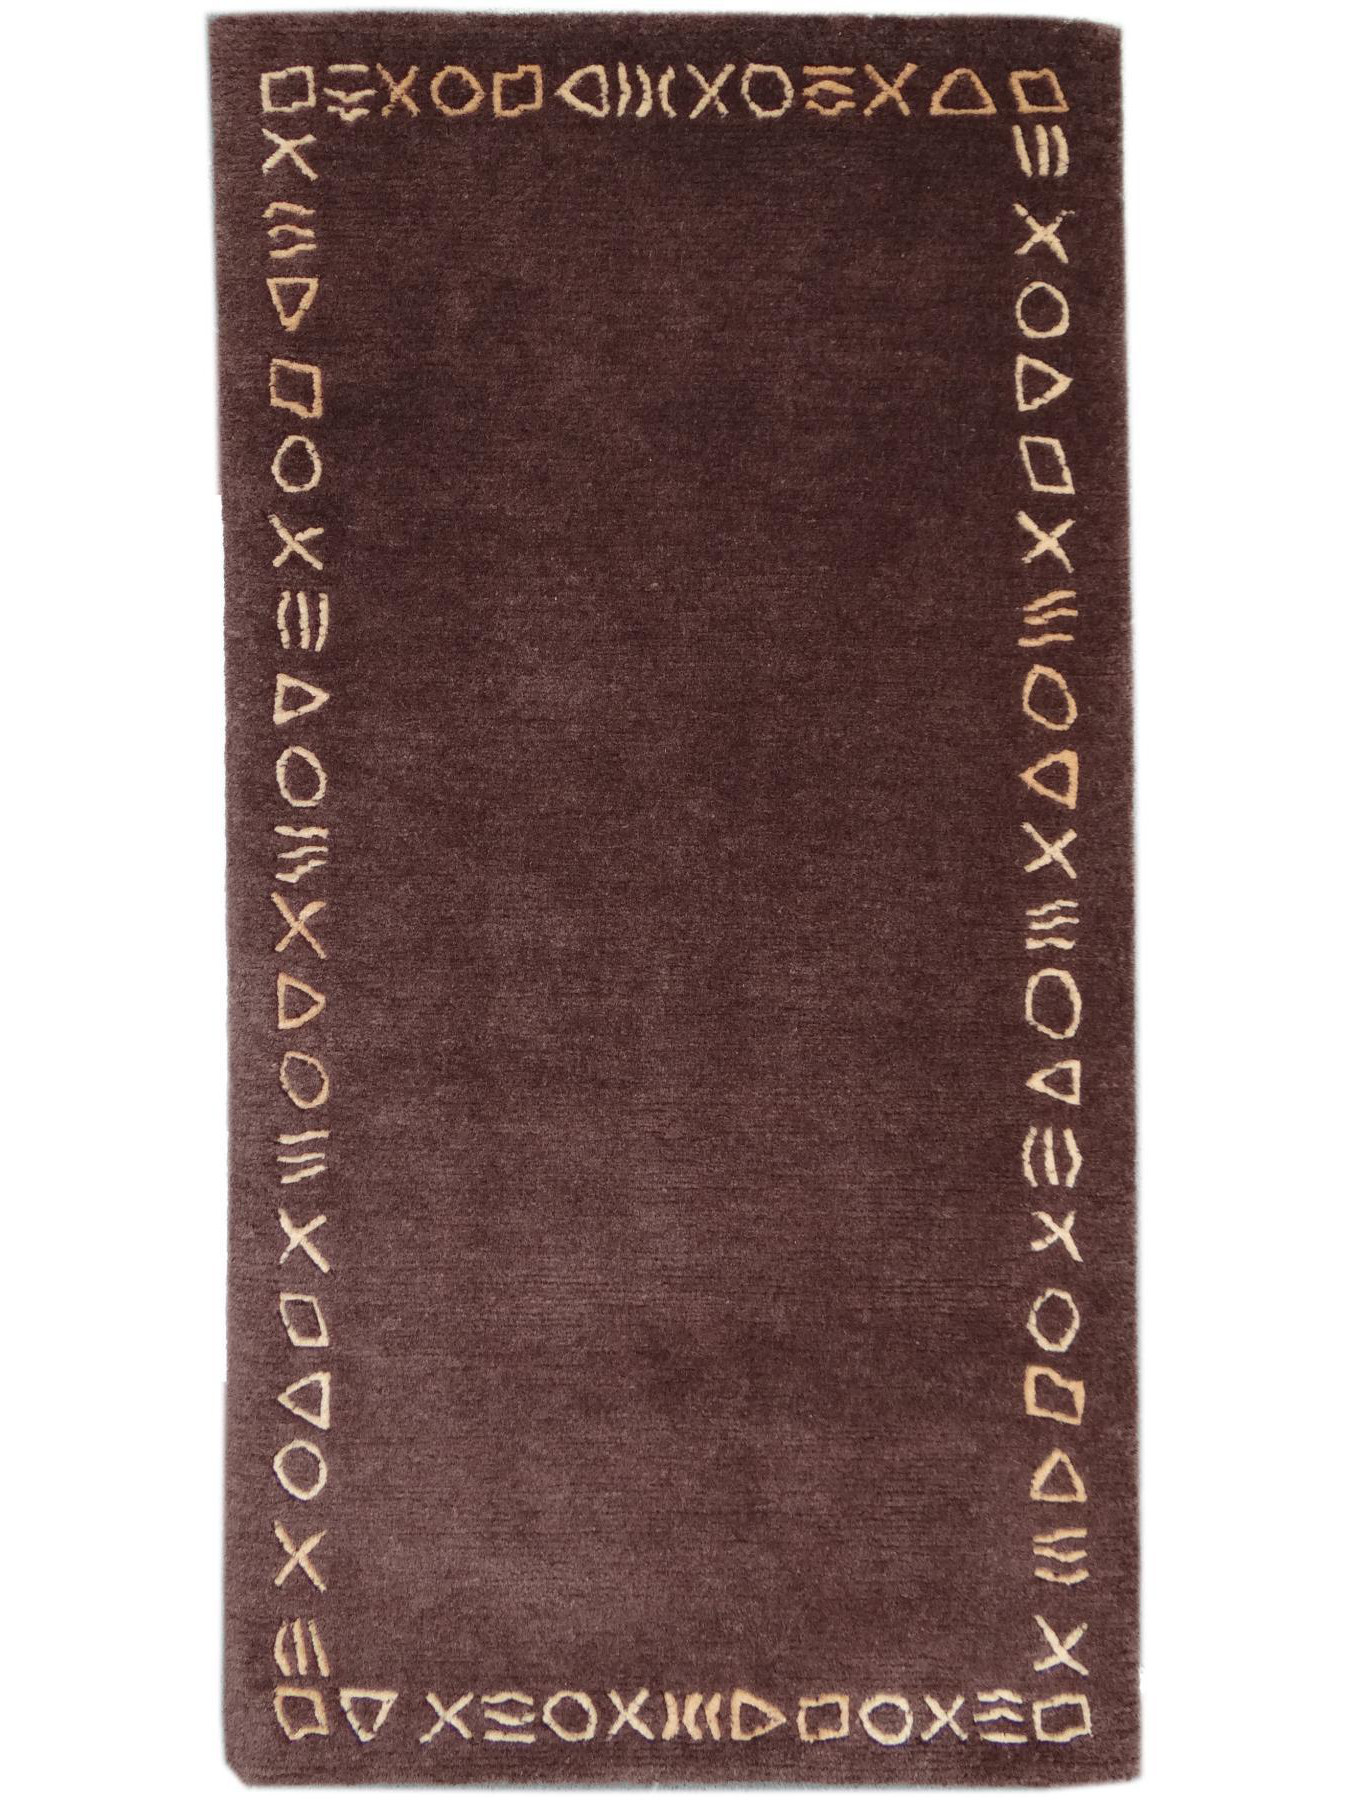 Carpets with borders - SCRIPT 1 - 6500